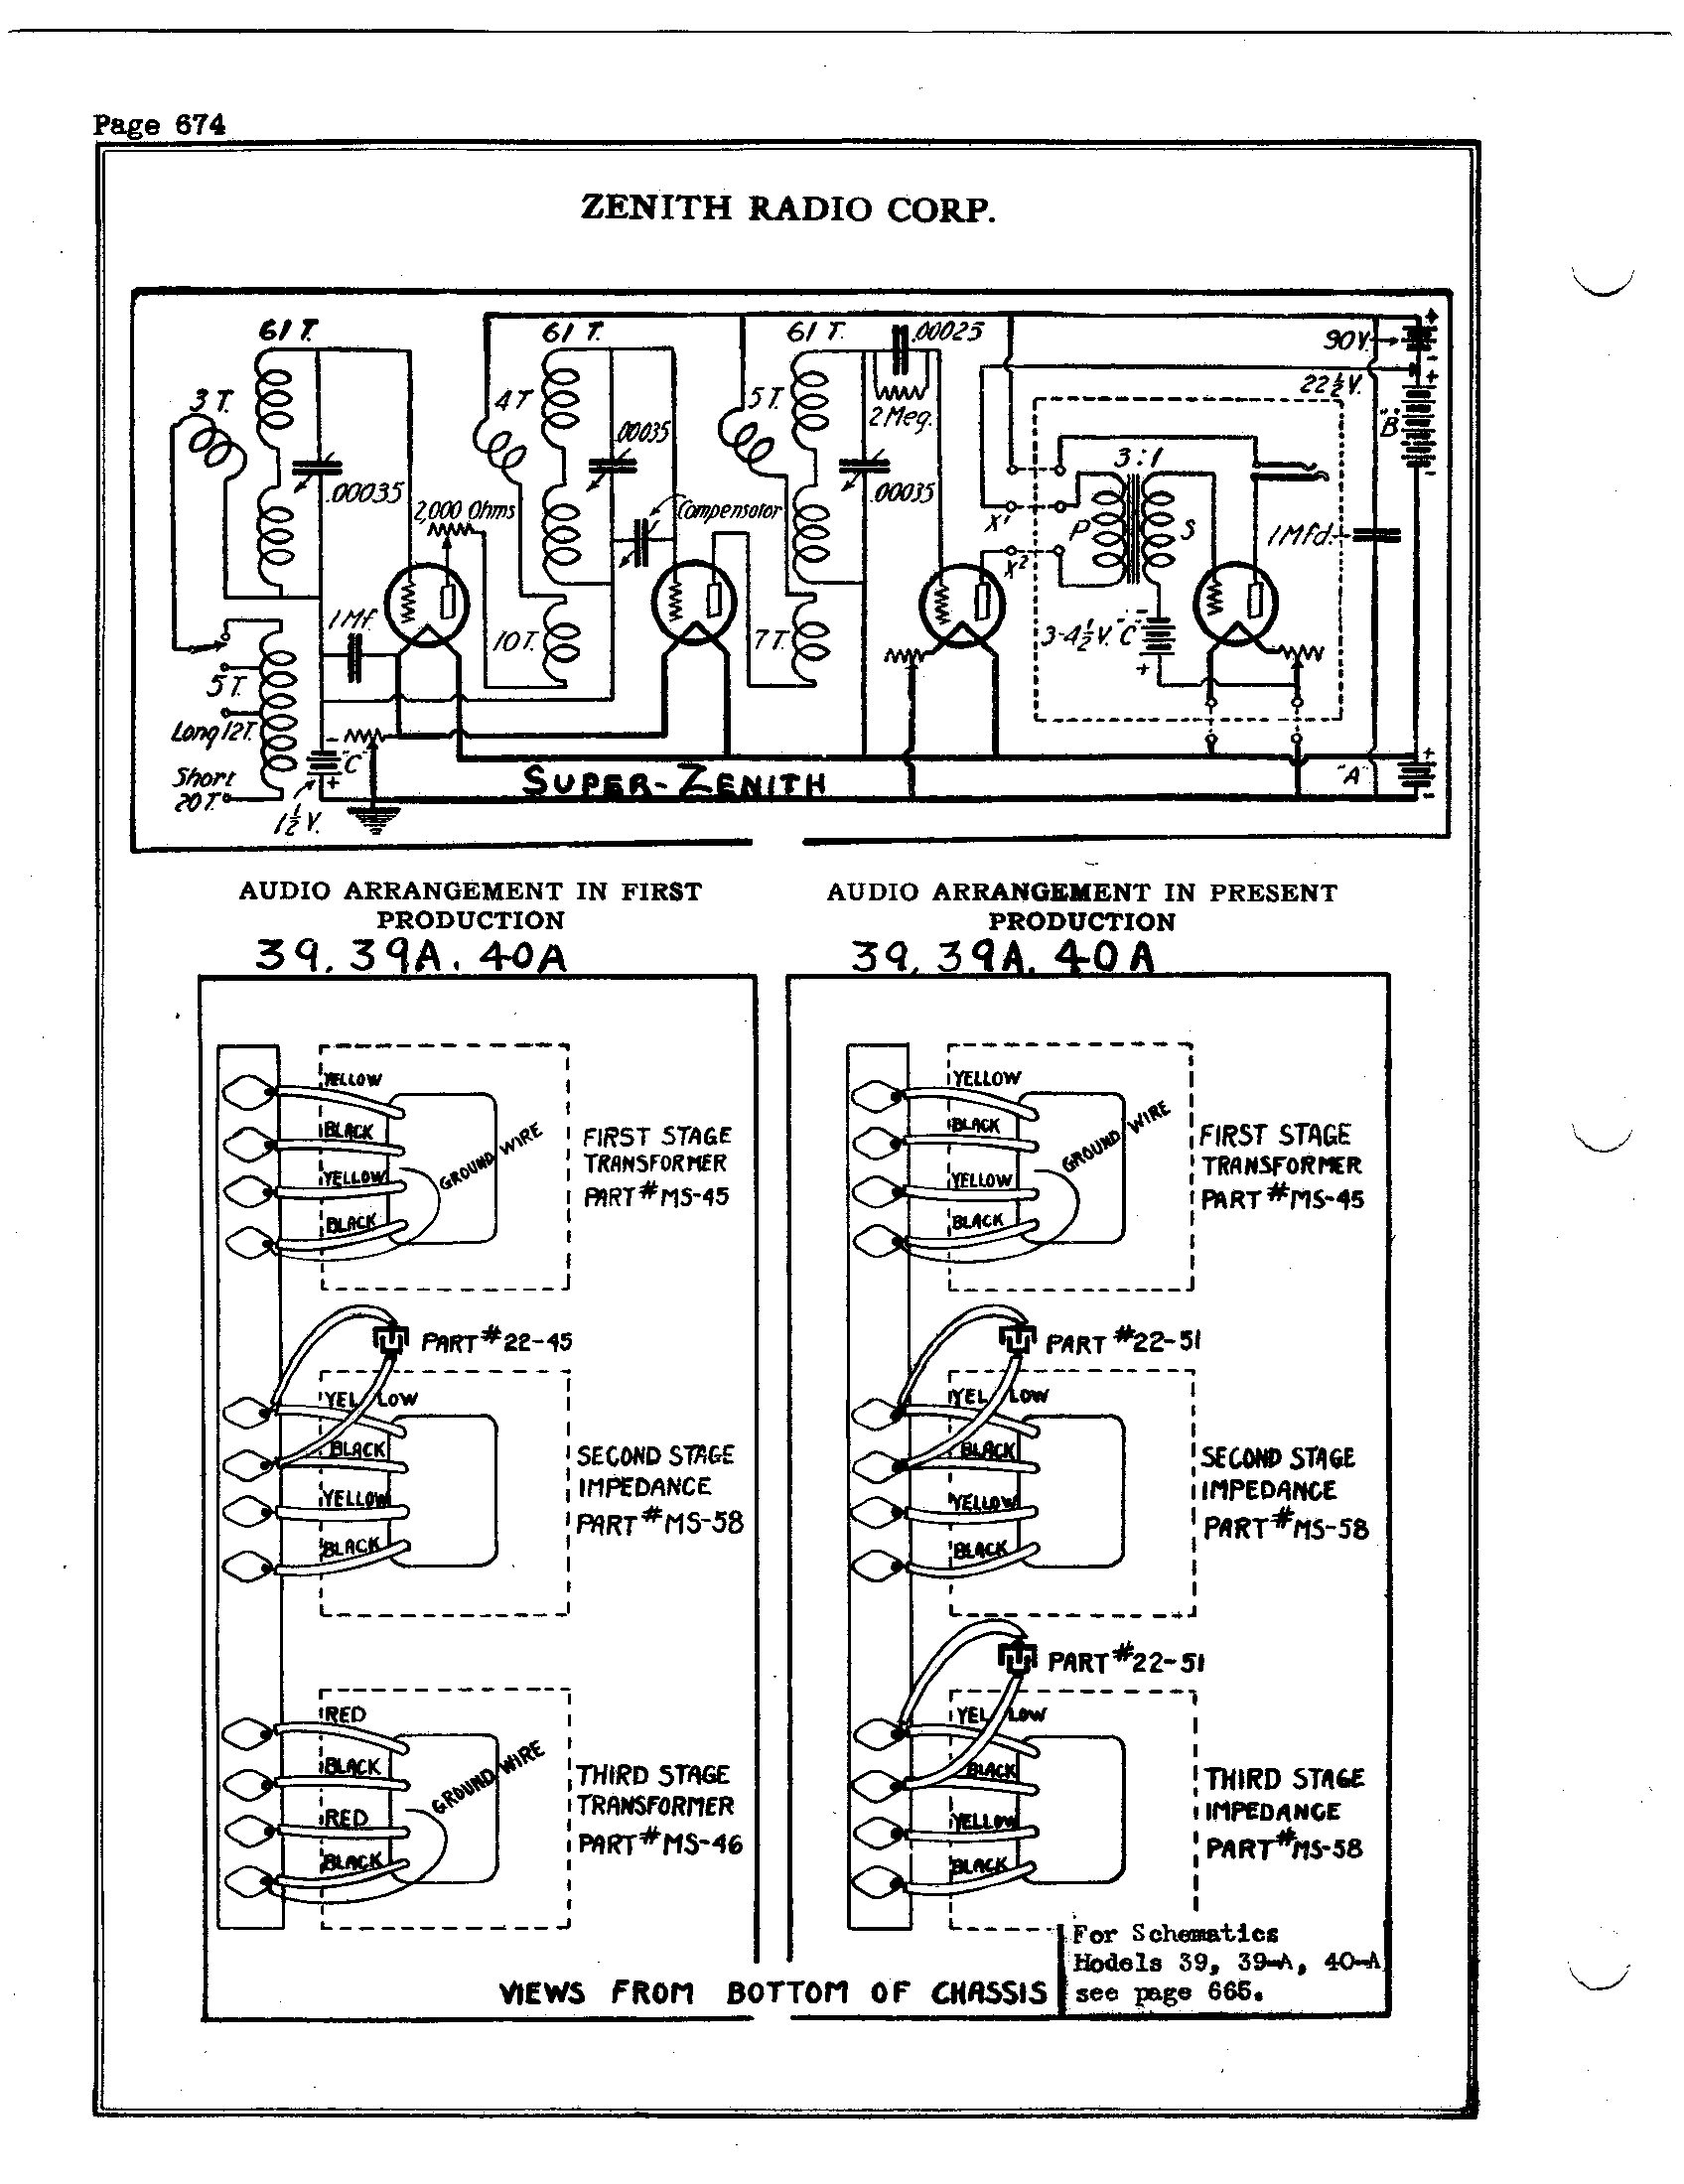 Zenith Radio Corp 39a Antique Electronic Supply. Page 3 5822 Kb Rider Manual Volume 1. Wiring. Zenith Tube Radio Schematics 39a At Scoala.co